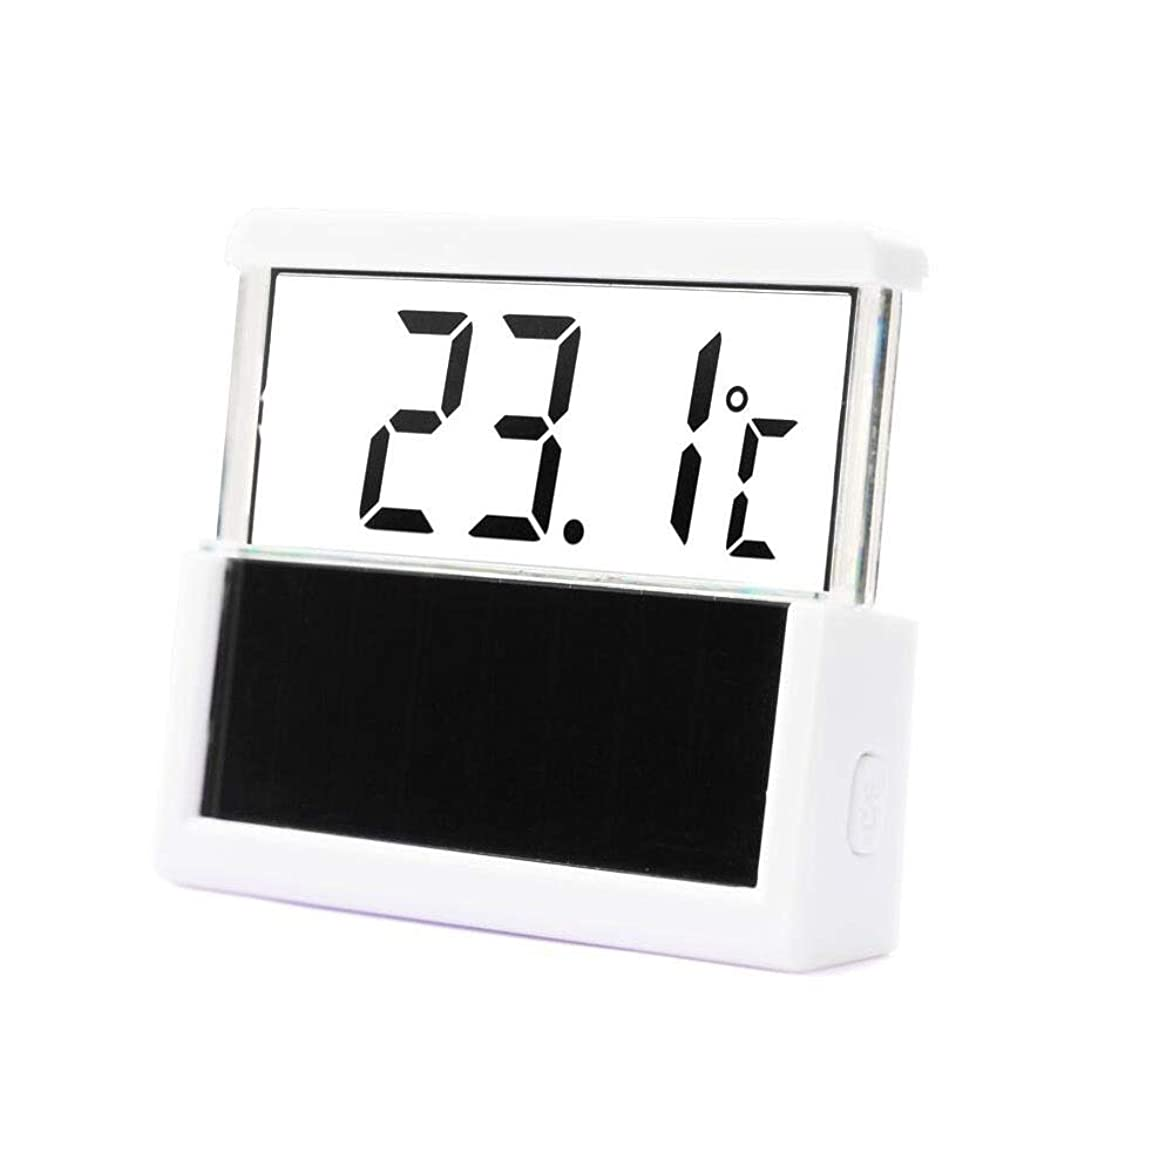 Thermometer - Aquarium Thermometer - Accurate Measurement, Suitable For A Variety Of Environments, Easy To Use ( White, 2.4*2*0.8 Inches, 2.4*0.8*2 Inches) ( Color : White , Size : 2.4*0.8*2 inch ) mjw749221297320